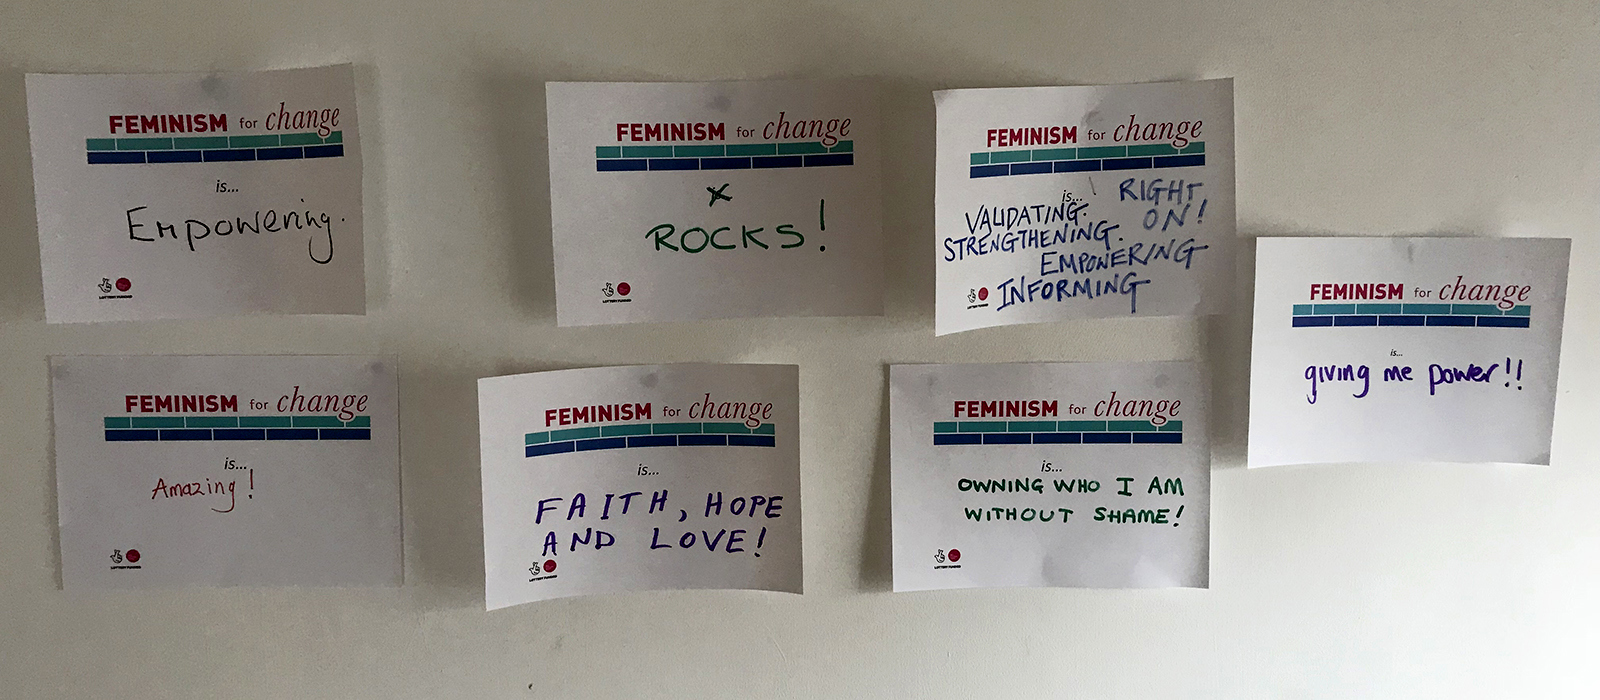 feminism for change participant feedback wall - amazing, rocks, empowering, validating etc